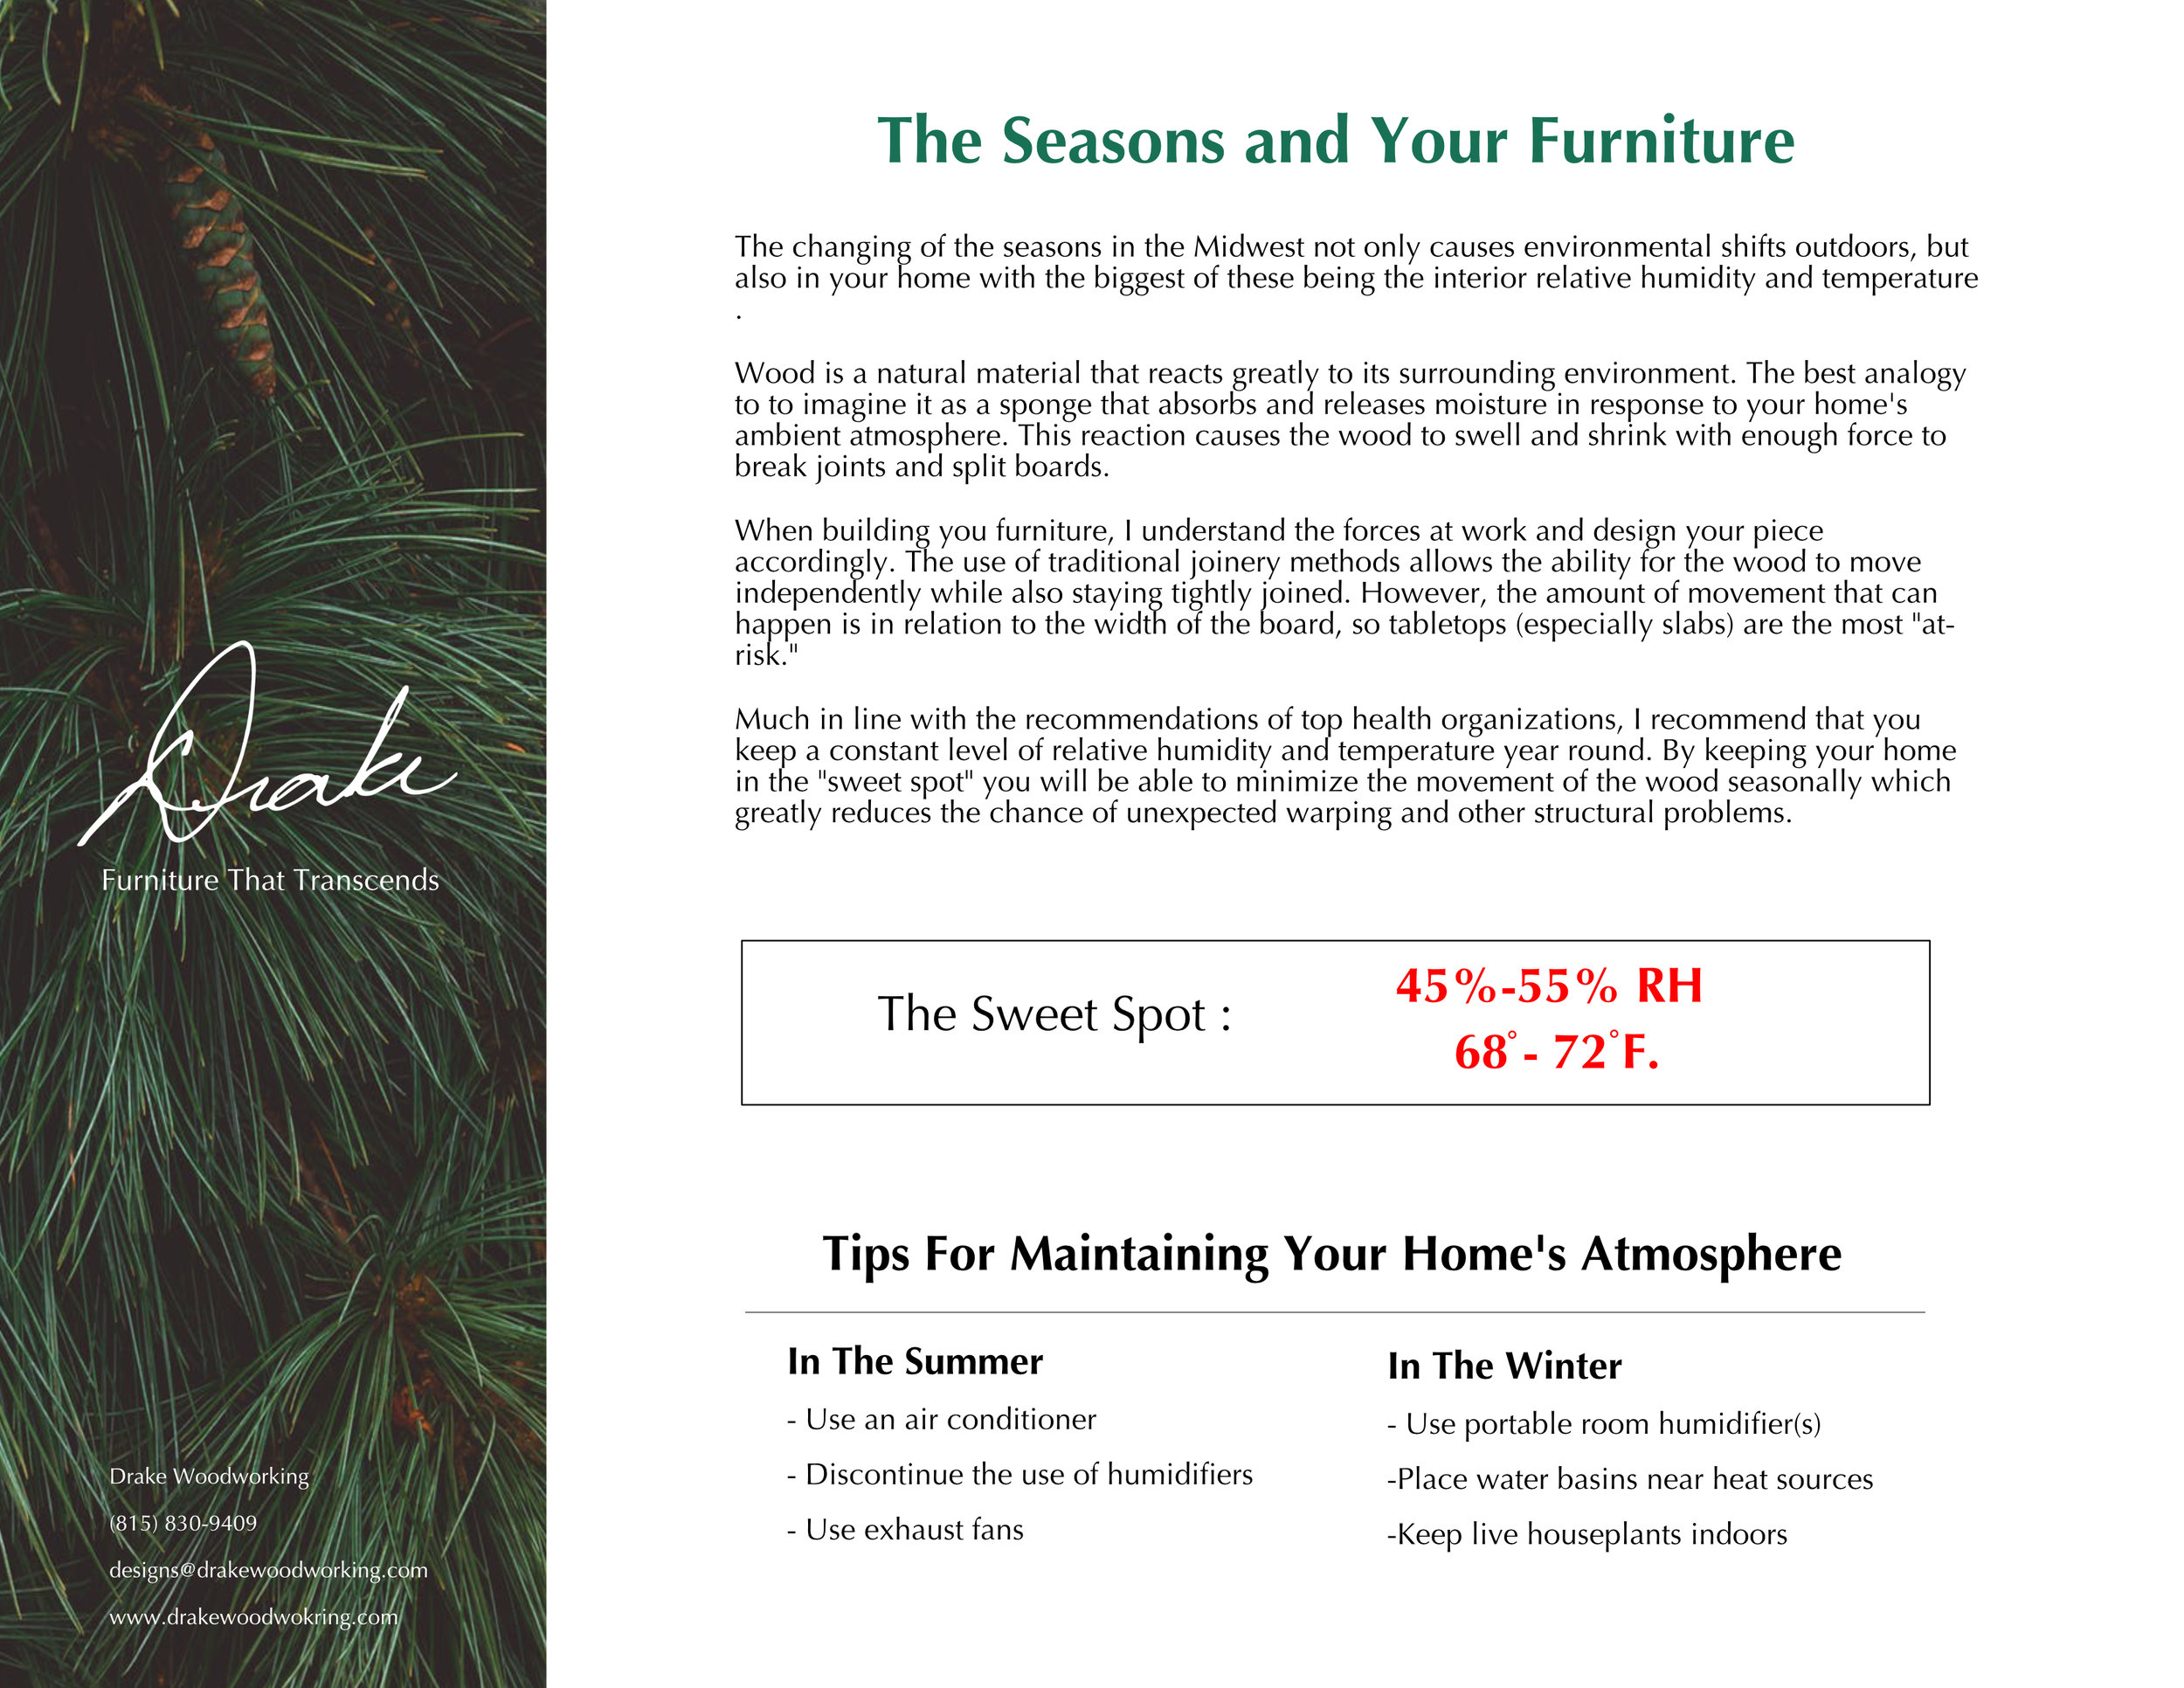 The Seasons and Your Furniture.jpg